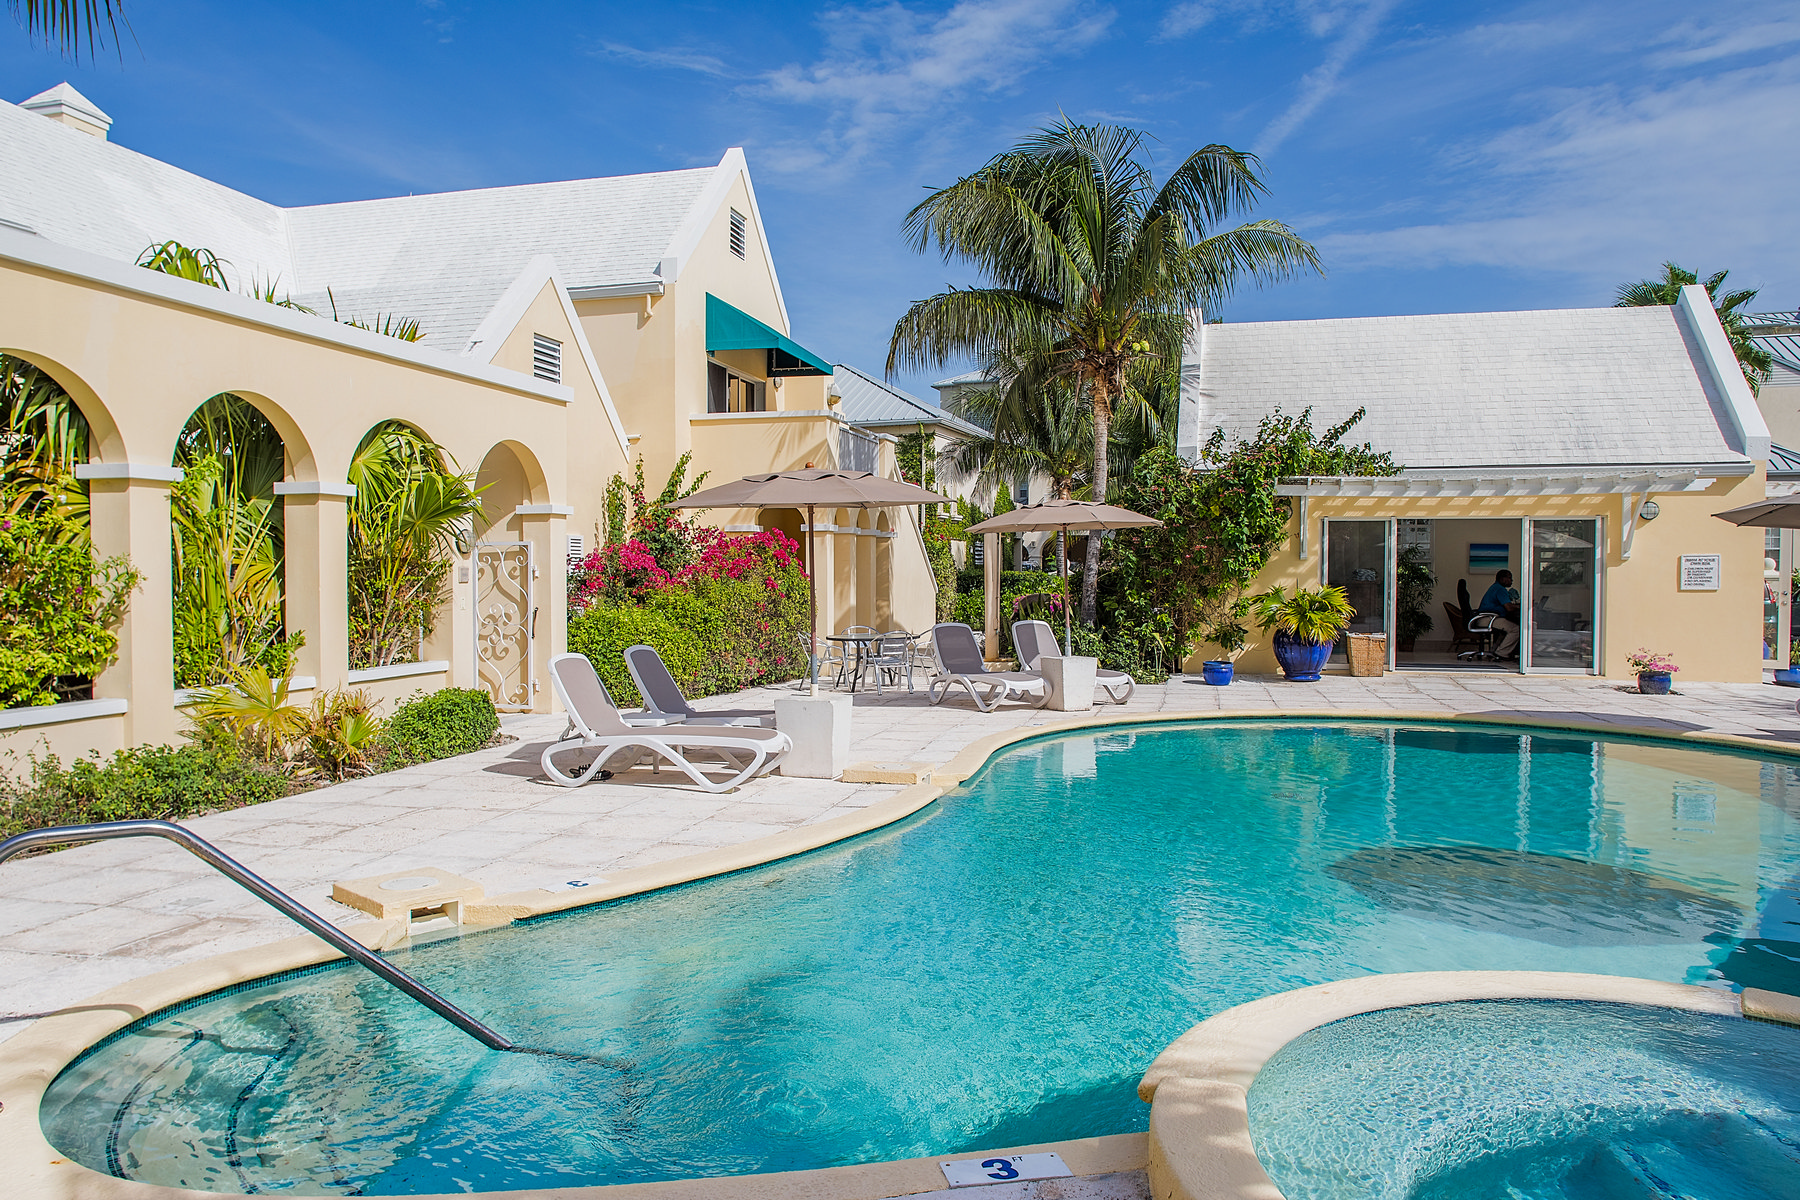 Other Residential for Sale at Reef Residences Grace Bay, Providenciales TKCA 1ZZ Turks And Caicos Islands